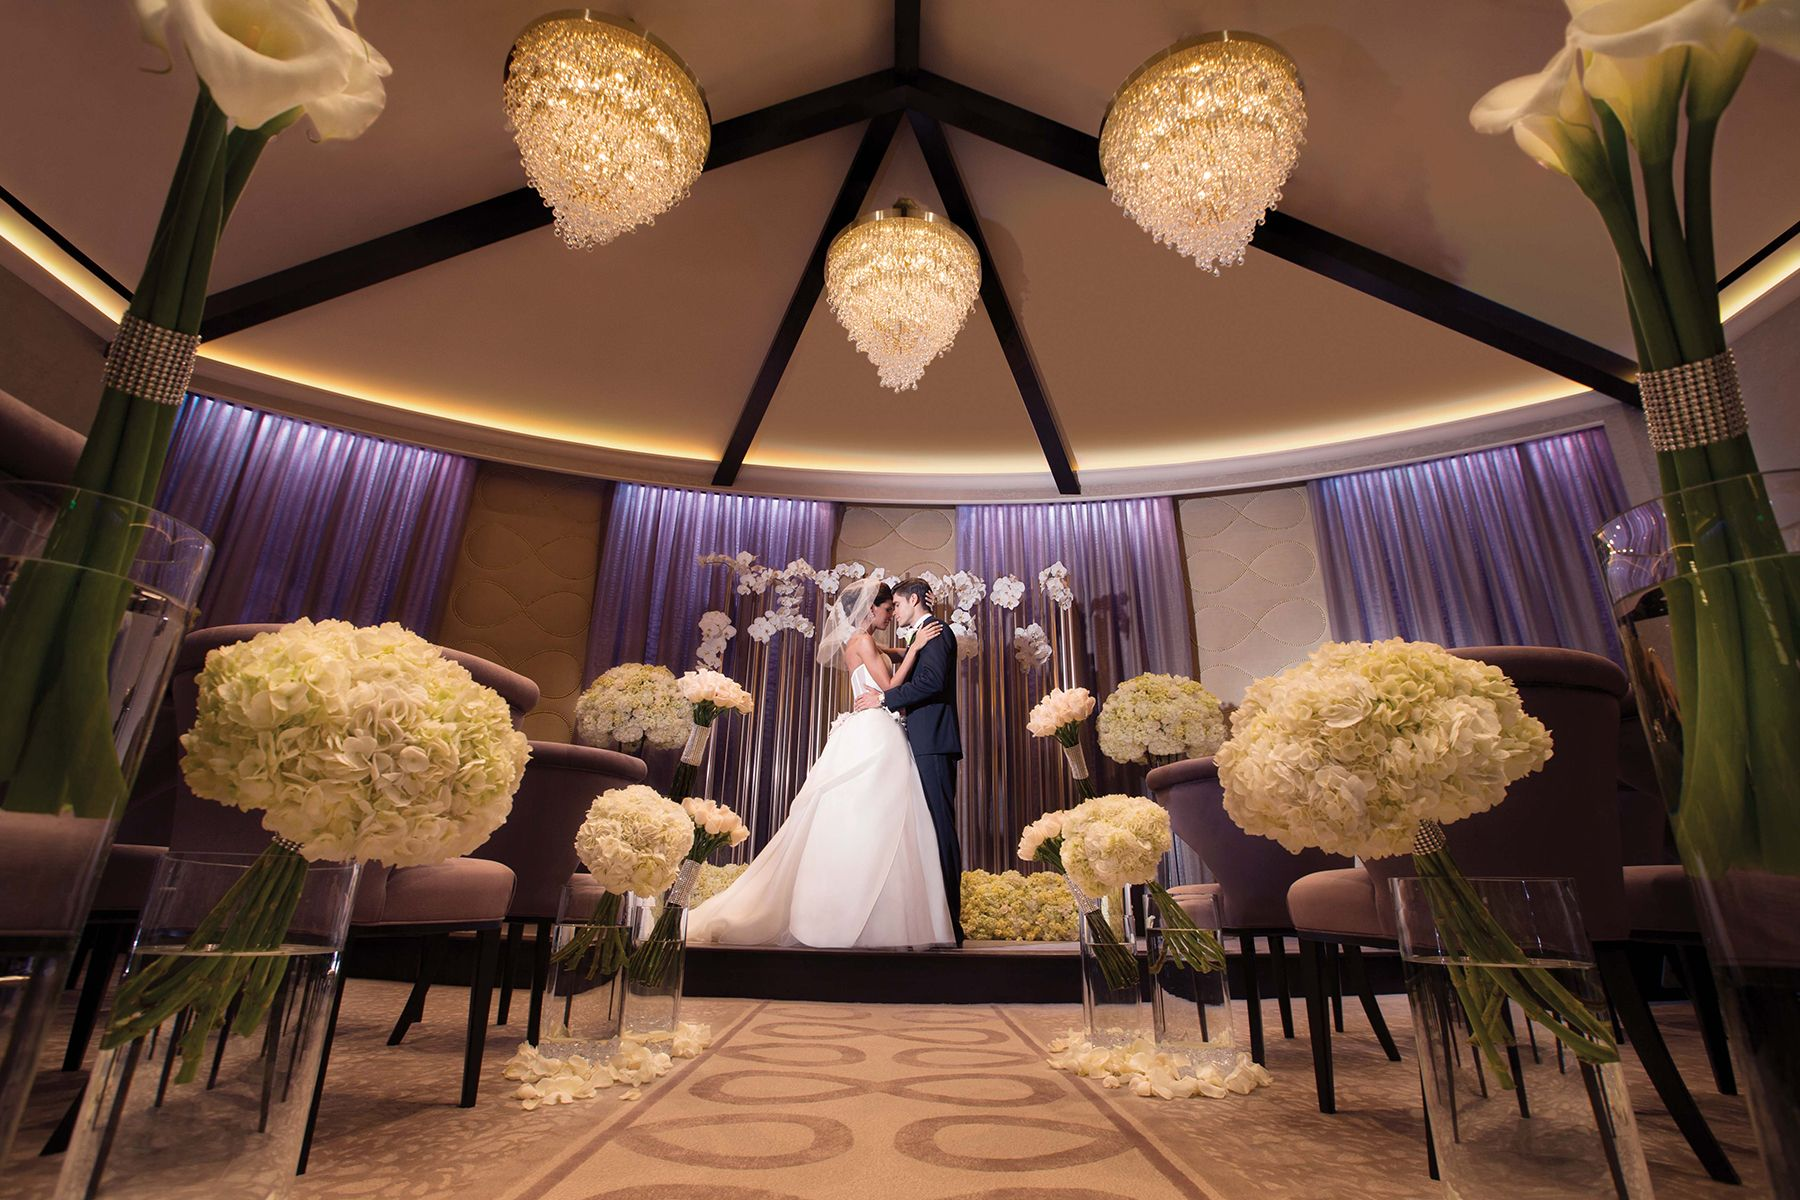 Aria Knows Weddings Our Contemporary Designed Wedding Chapel Offers The Perfect Touch Of Modernluxury Like None Other In Vegas